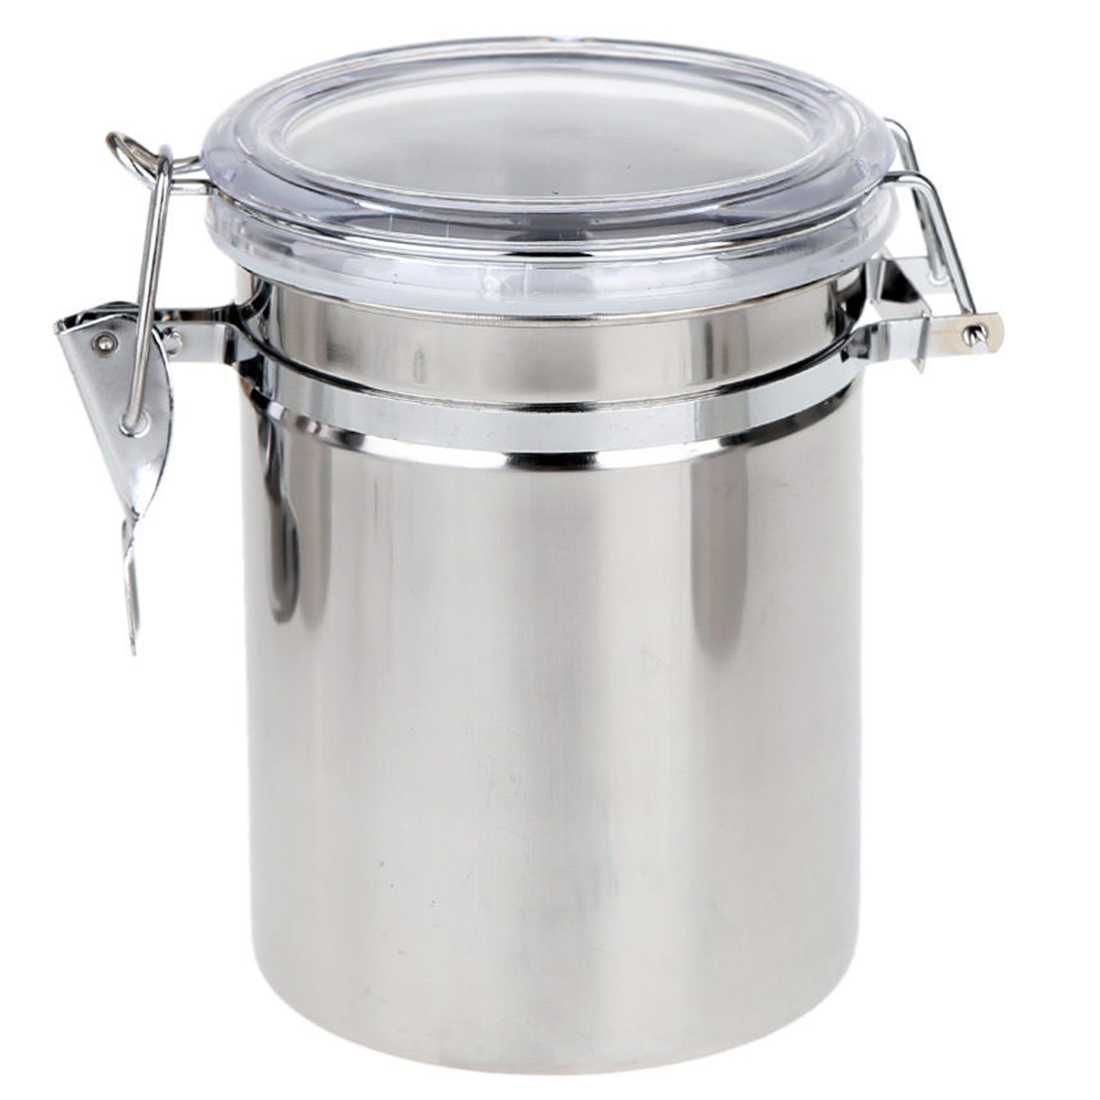 4pcs Stainless Steel Canister Spice Storage Jar Set